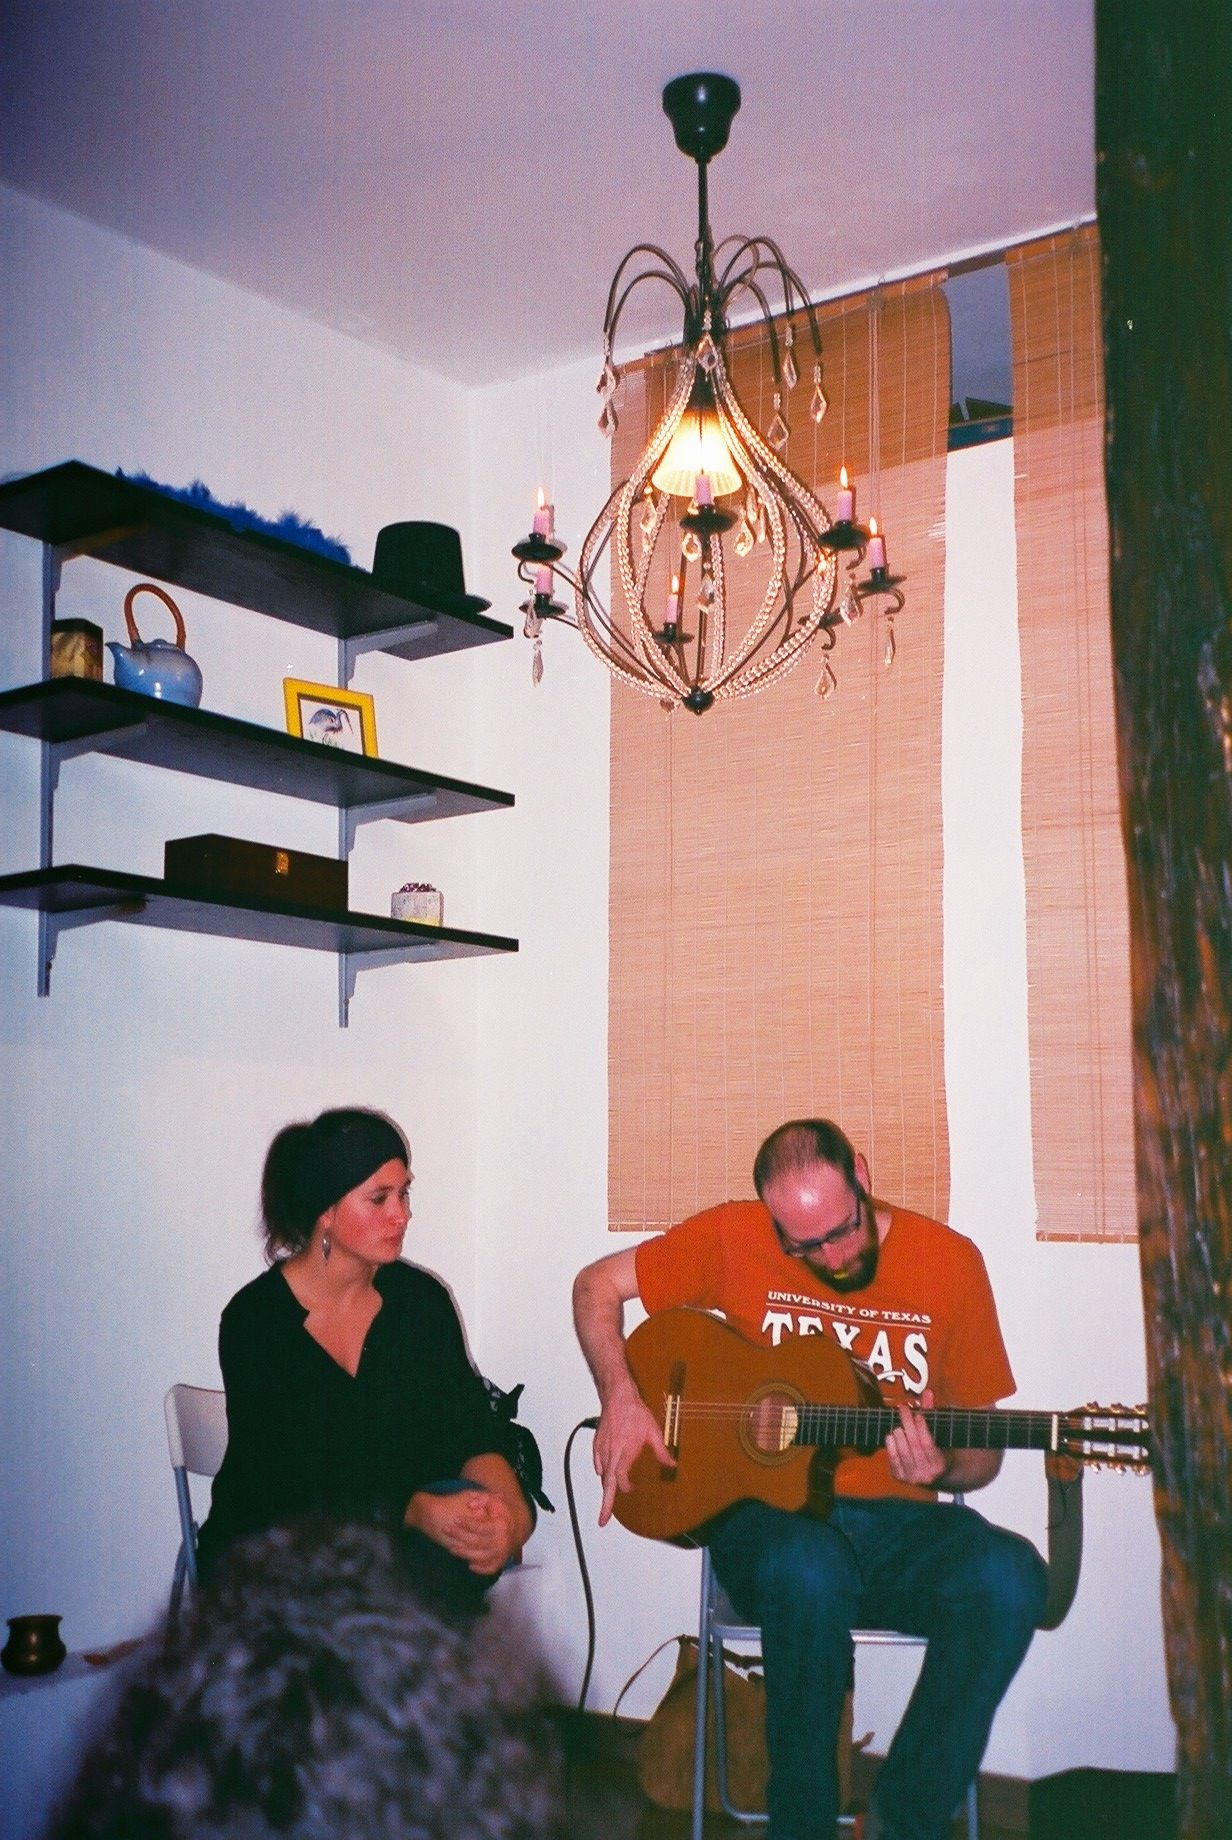 Living Room Concert In Madrid Espana Live Music In Spain Gibraltar The Band Countries Of The World Espana Spain In living room concert